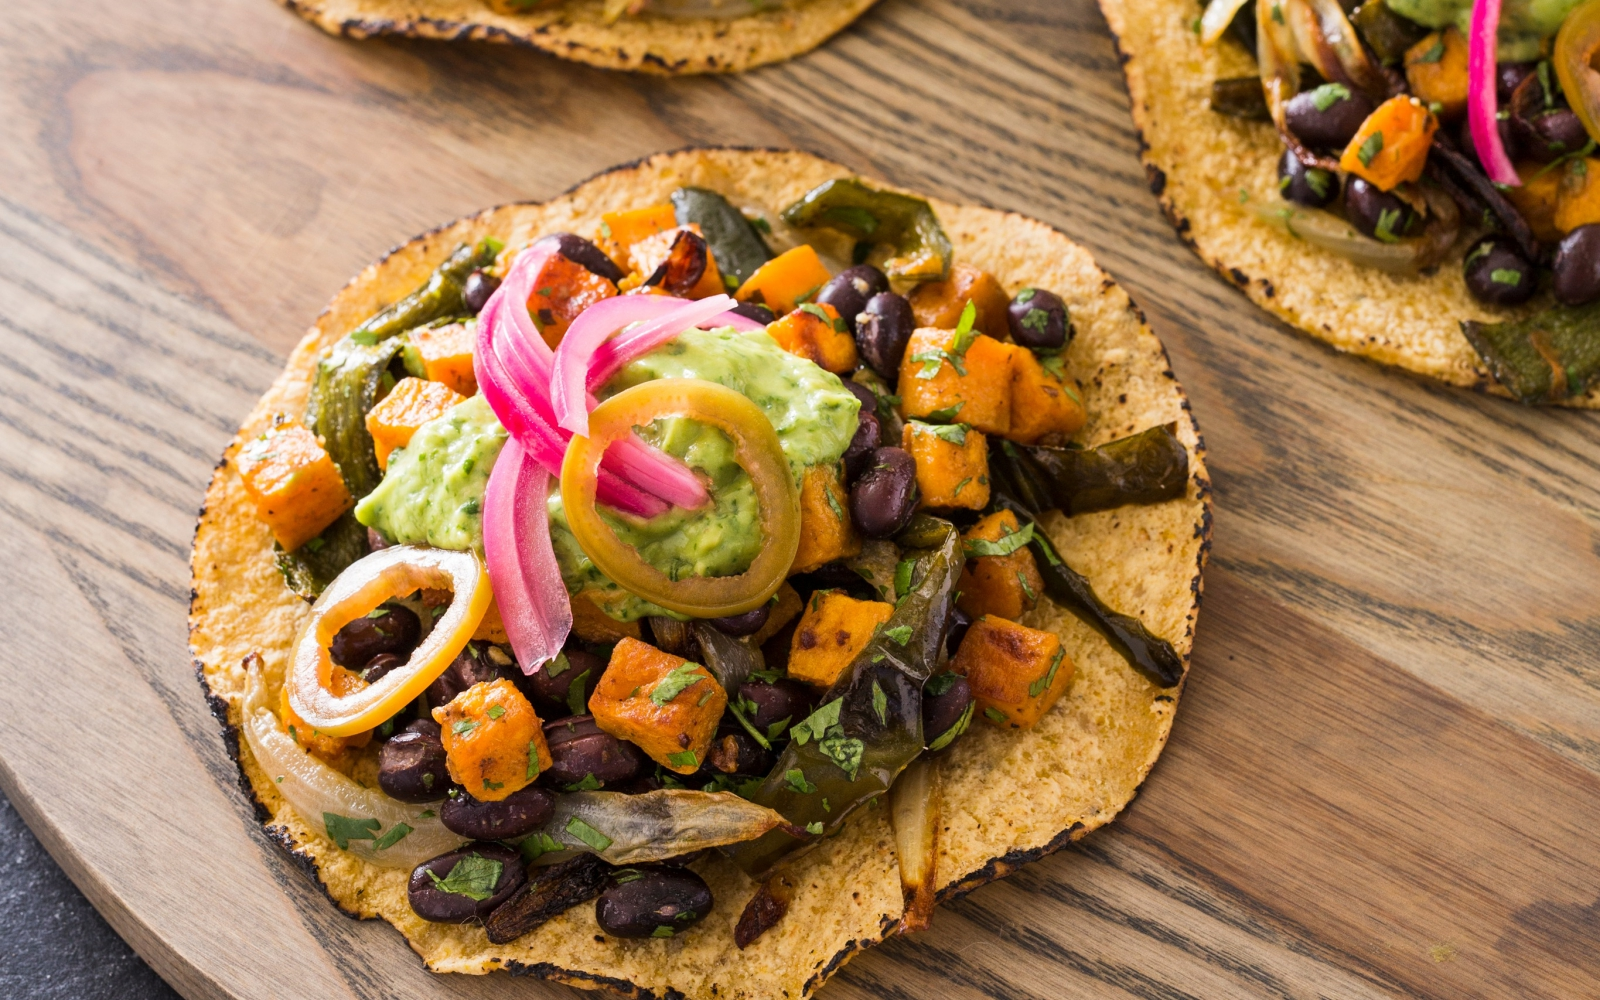 Vegan Sweet Potato Poblano and Black Bean Tacos